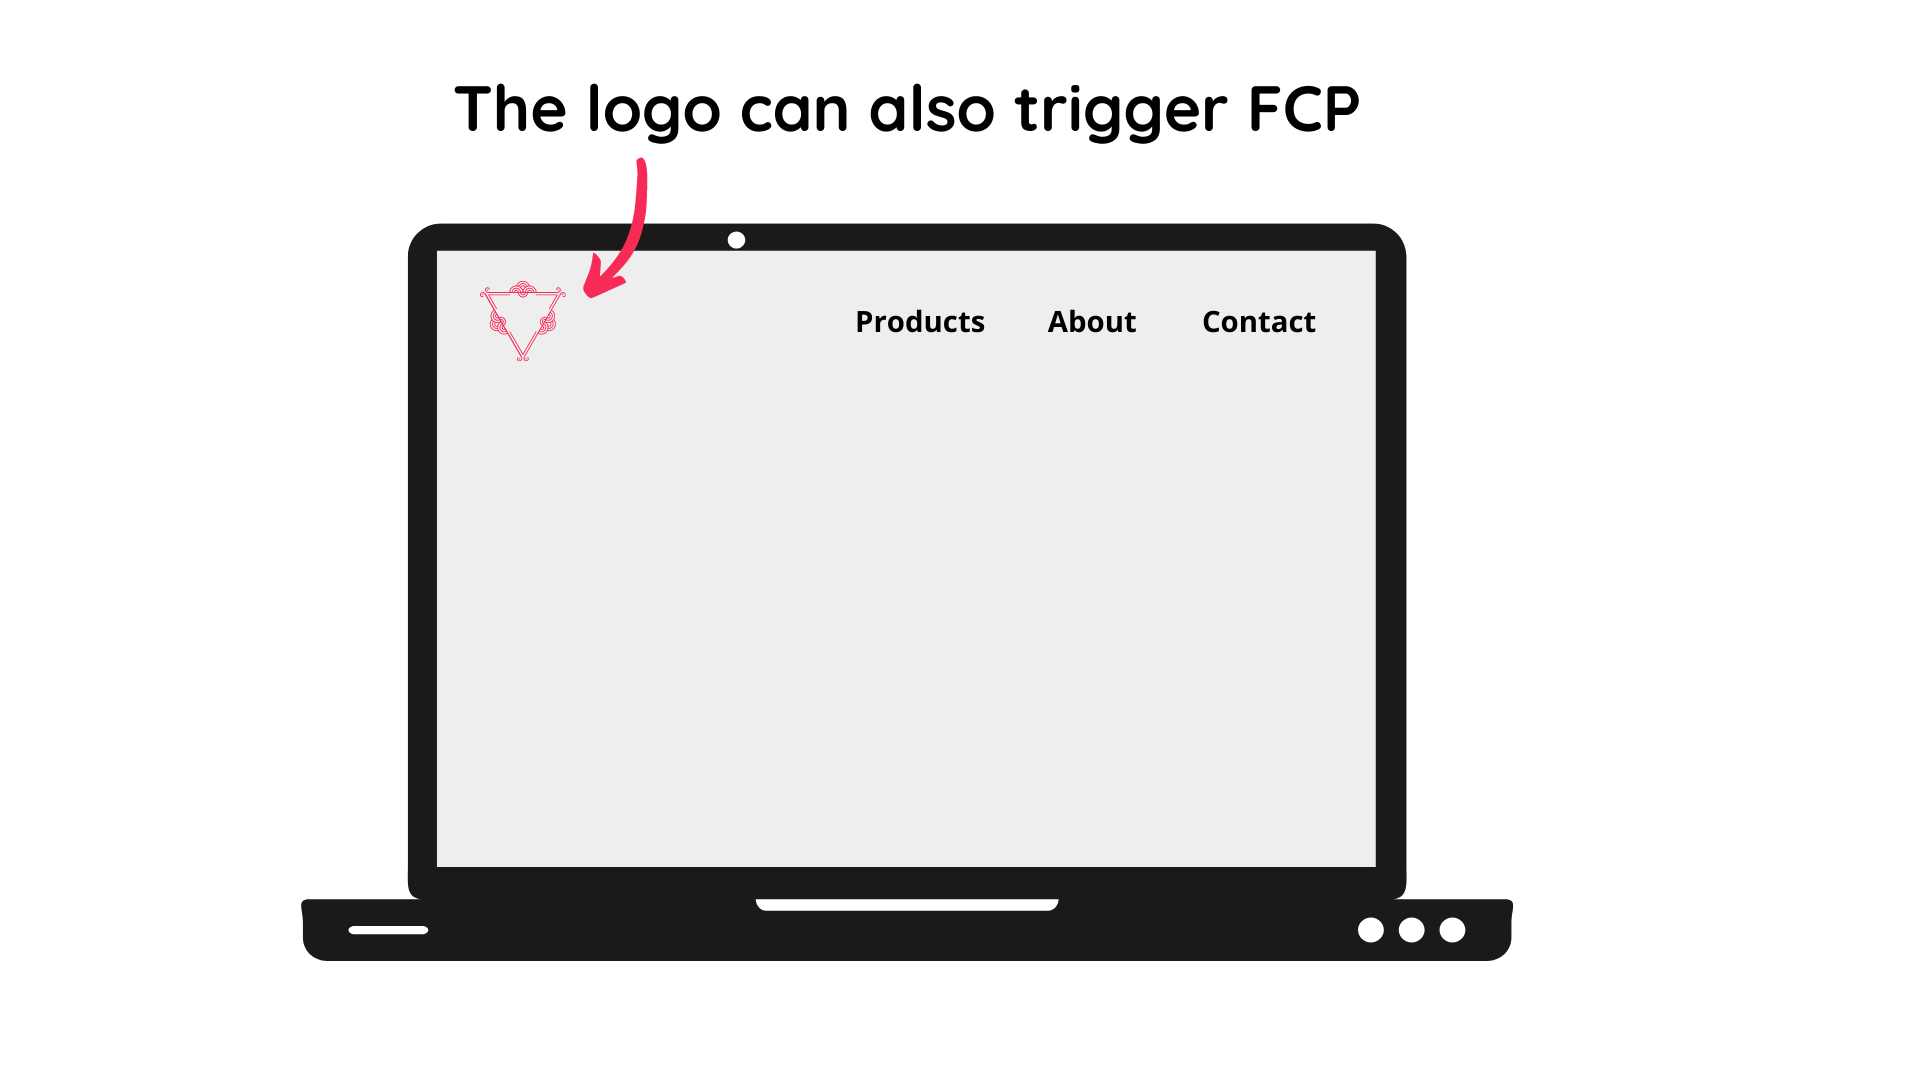 Company logo triggers lcp on laptop